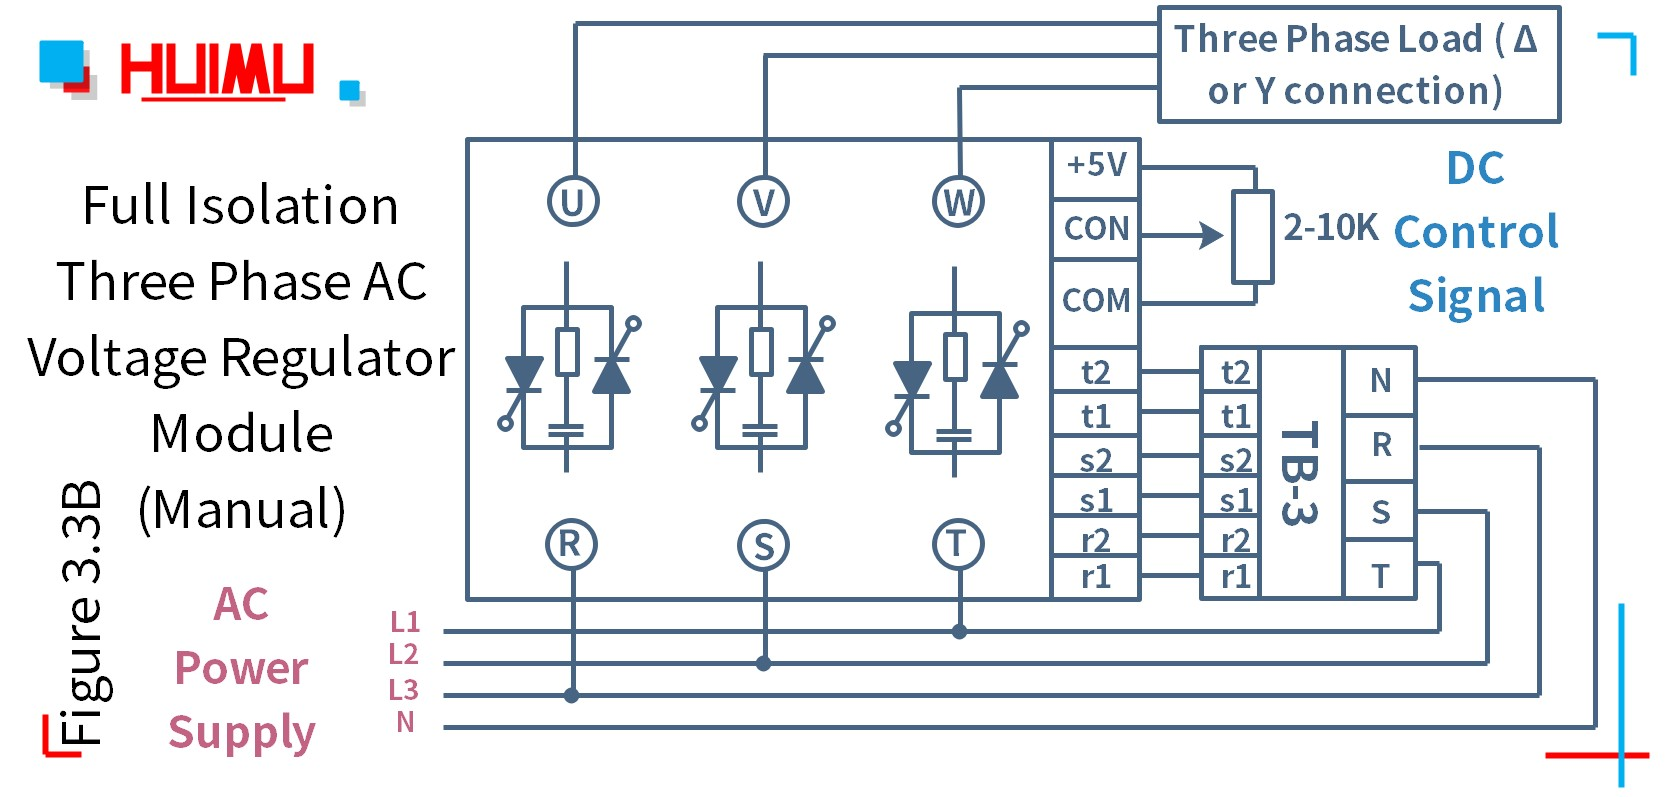 How to wire MGR mager MGR-STY380D40E (manual control signal) full isolation three phase AC voltage regulator module? Manual control signal, E, F, H types can be controlled by manual, and G type cannot. More detail via www.@huimultd.com